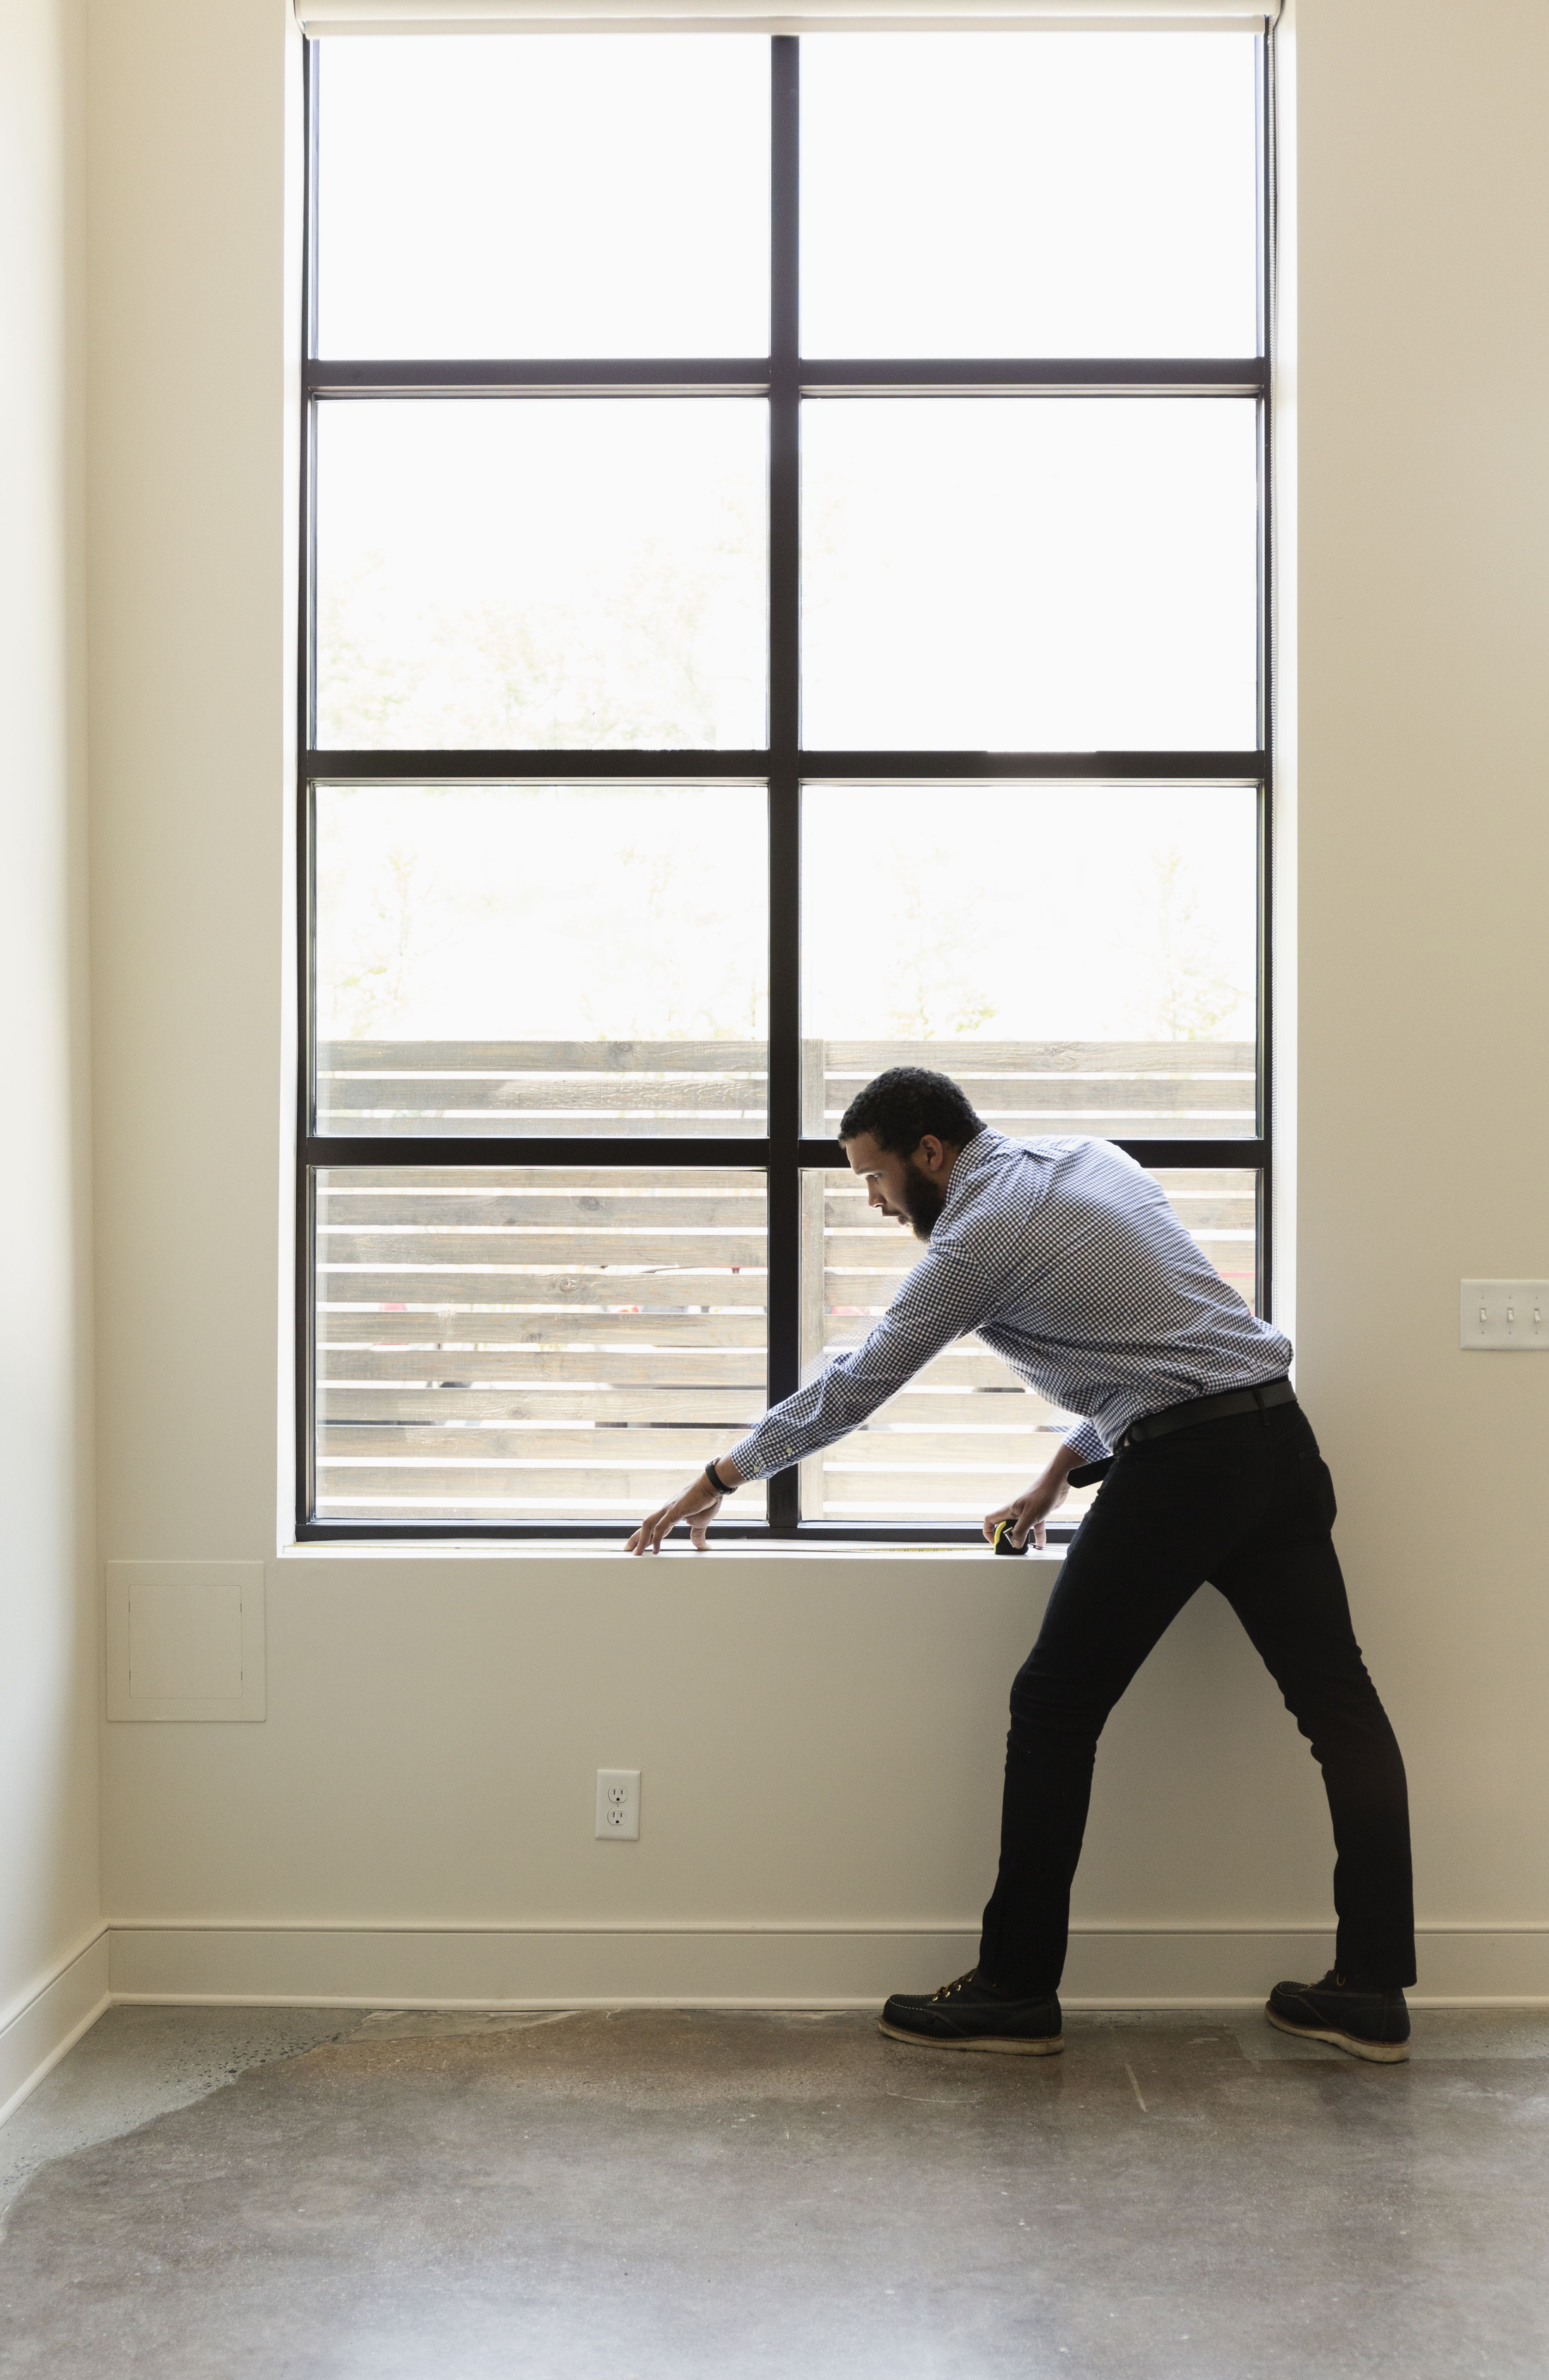 foggy window repair better option than replacement